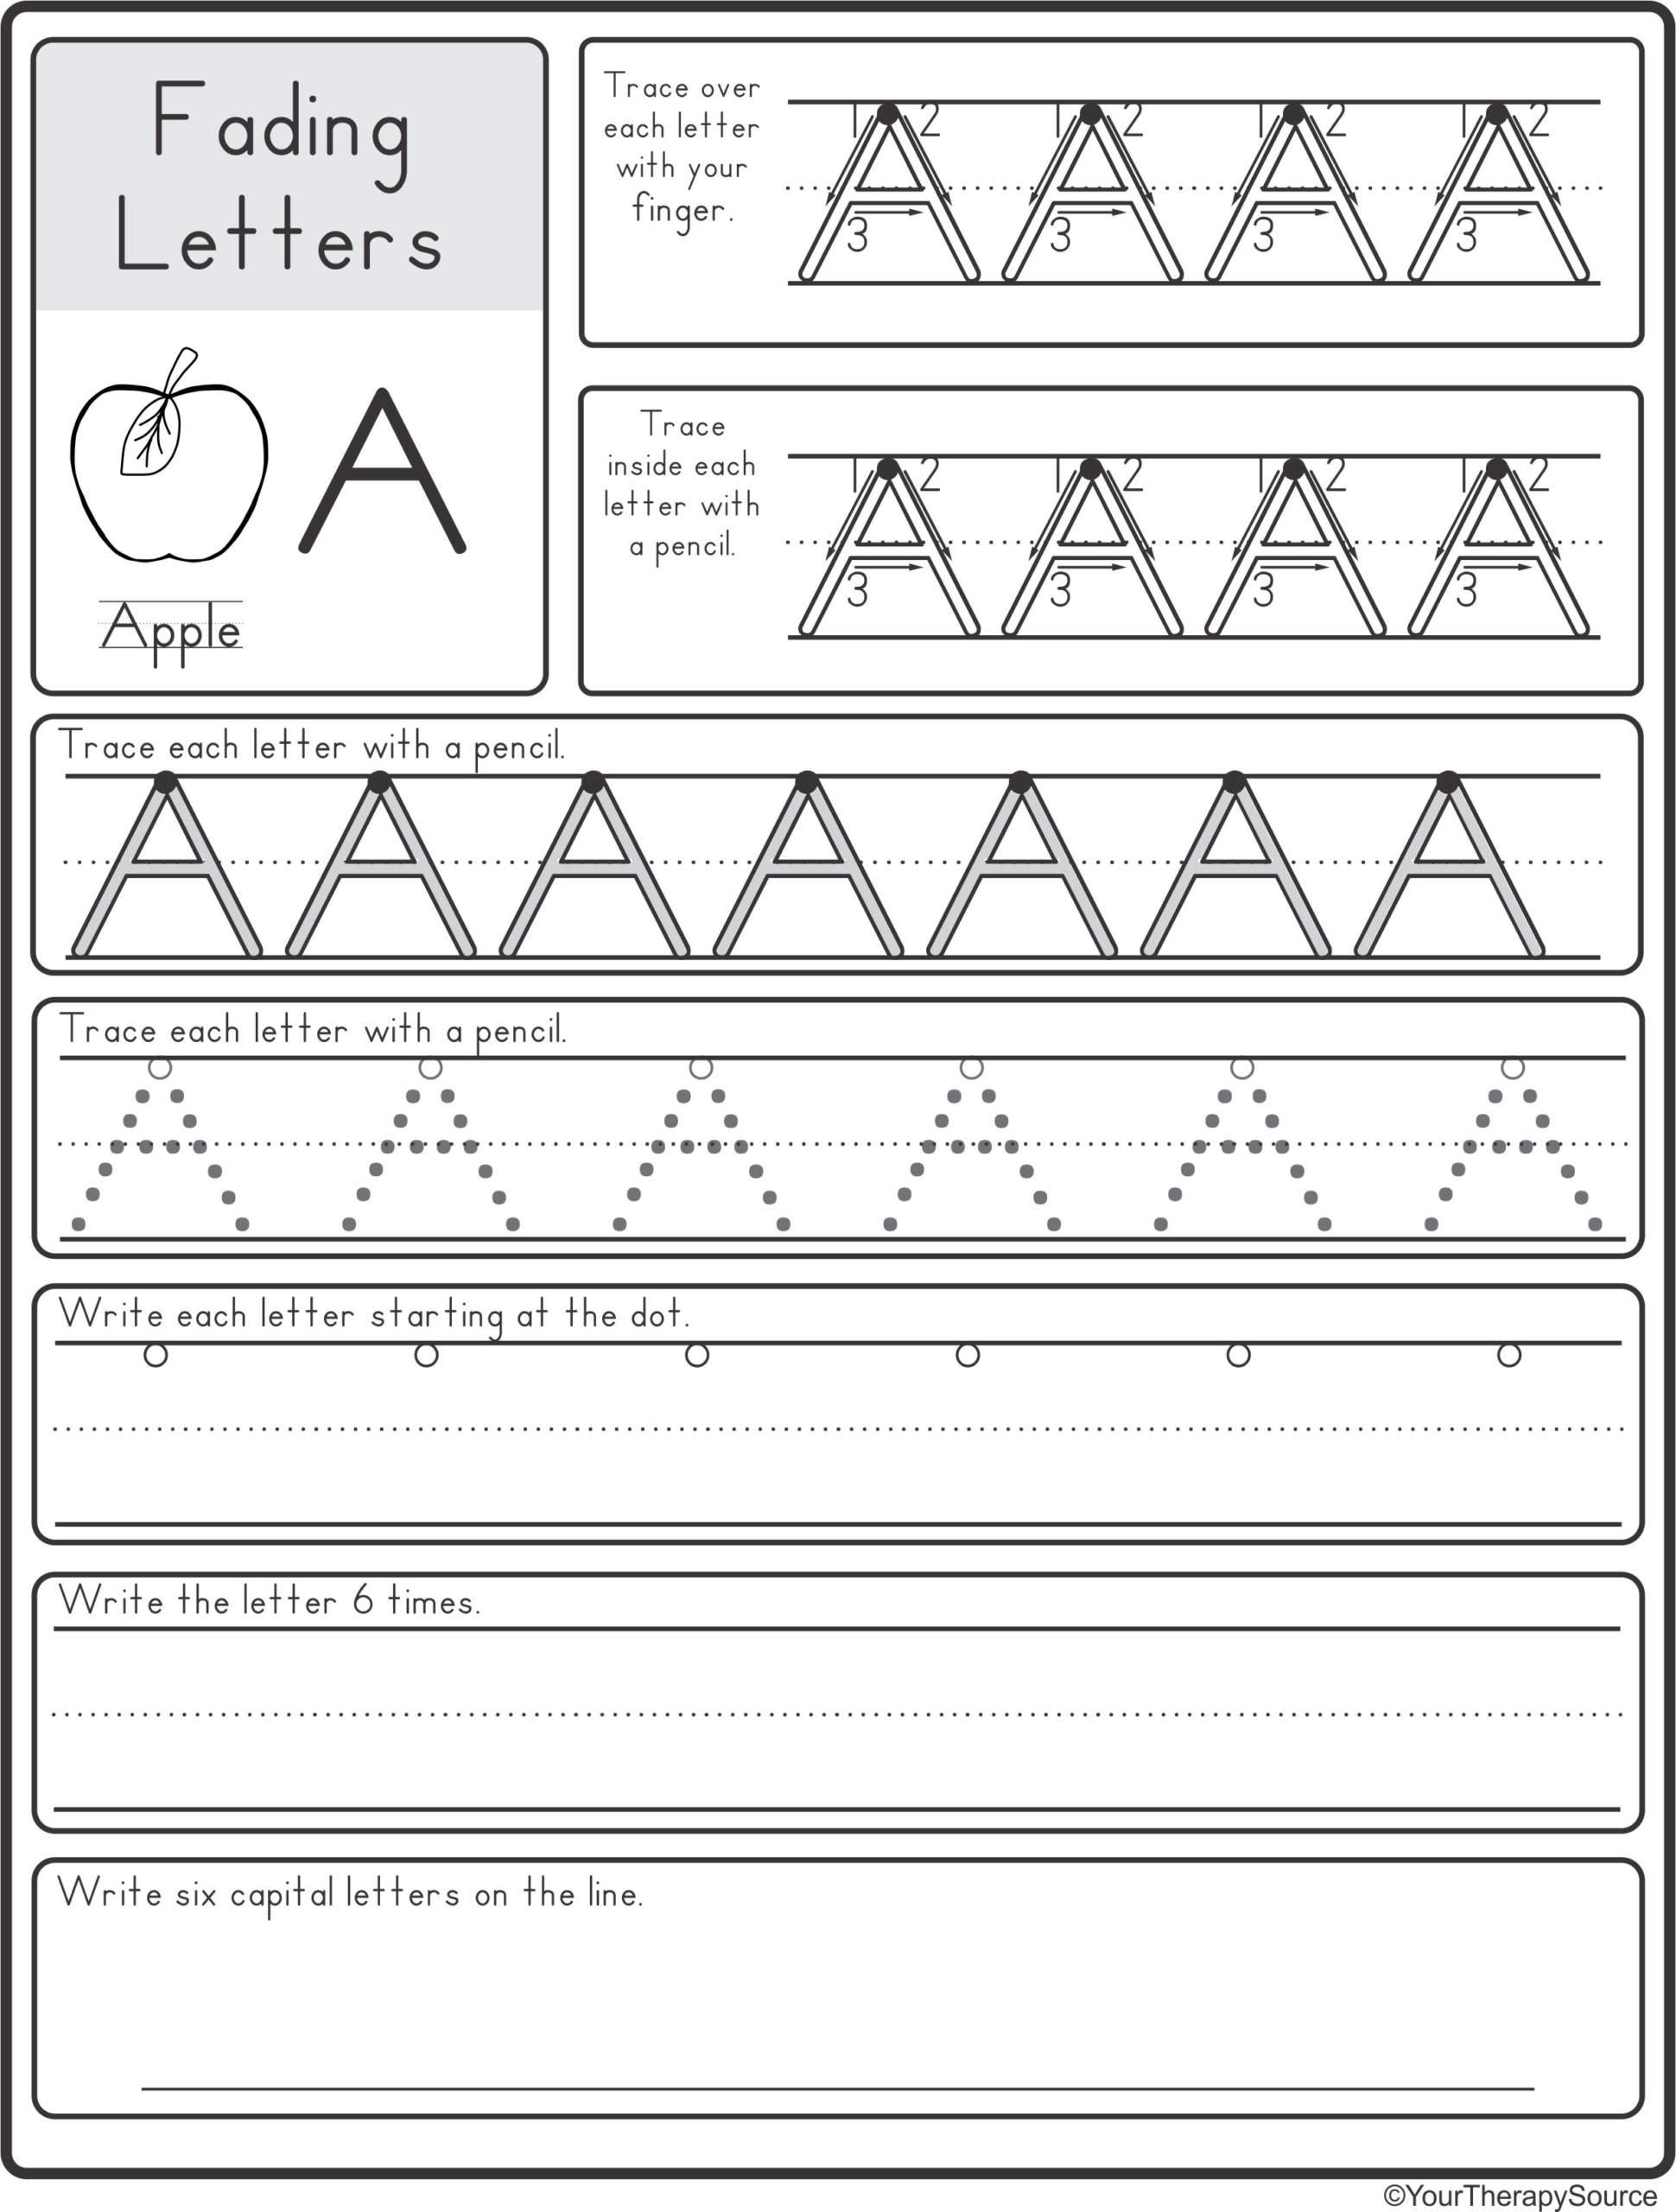 Fading Alphabet Double Line OR Dotted Line Style   Your ...